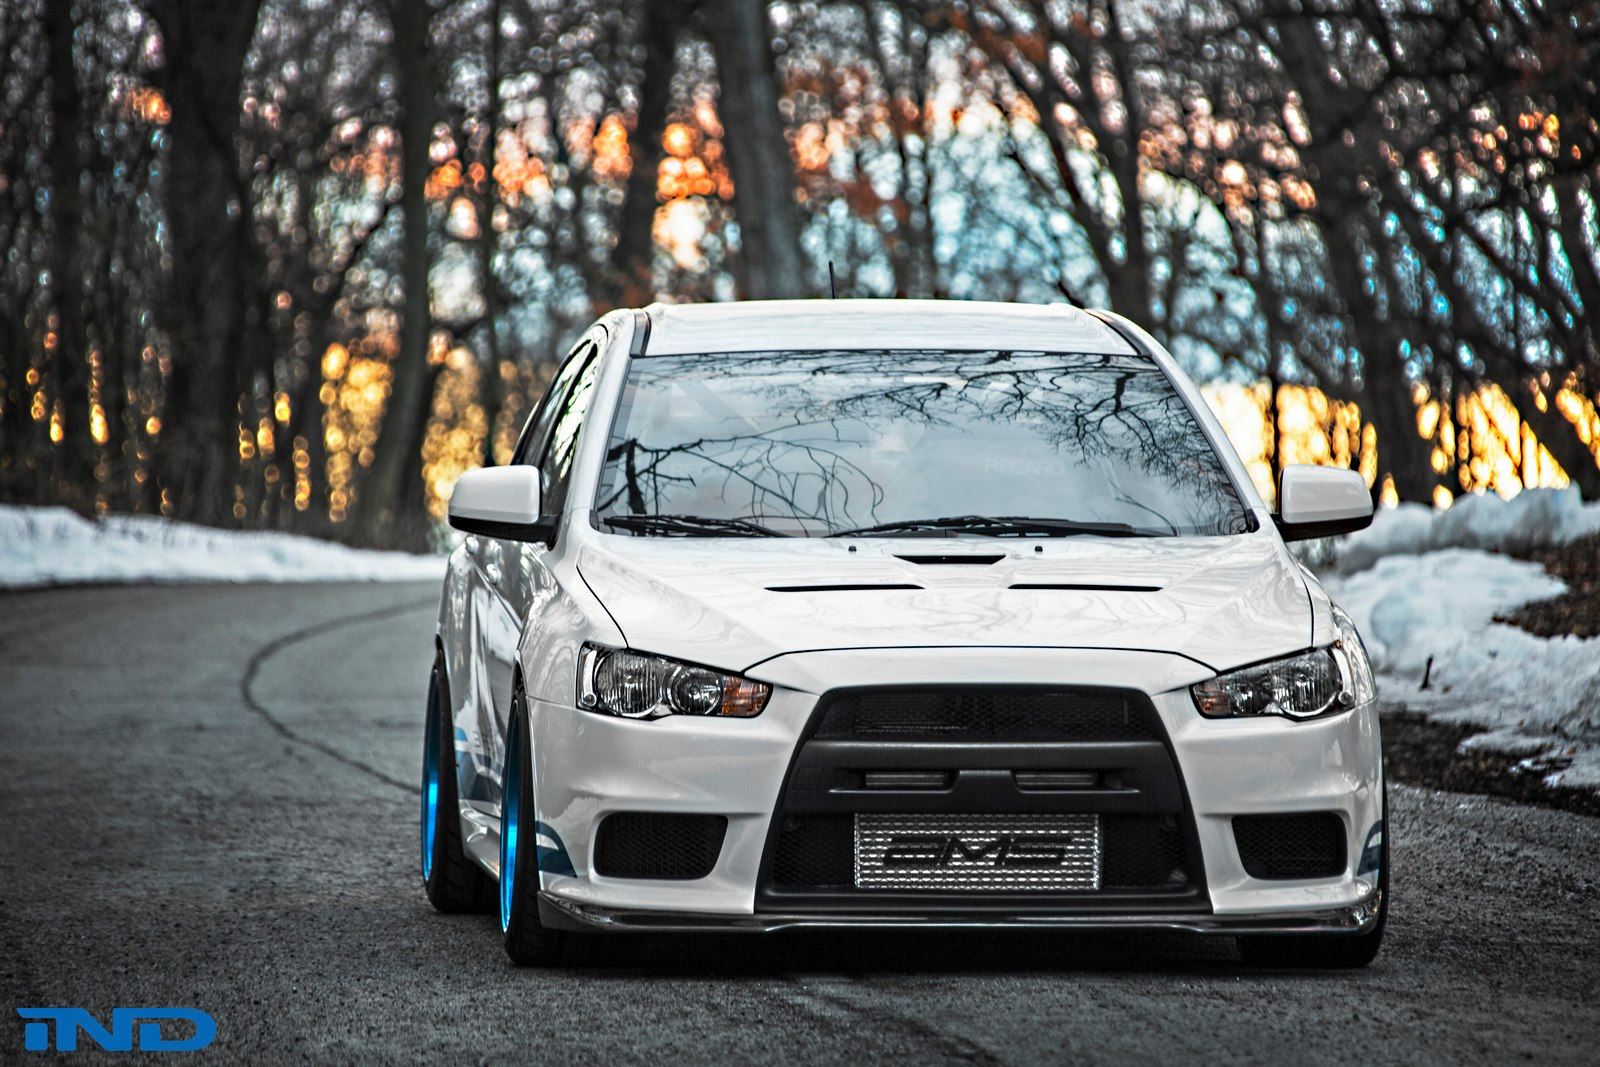 Cool Modified Cars Wallpapers 2013 Ind Mitsubishi Evo X 311r S Tuning Wallpaper